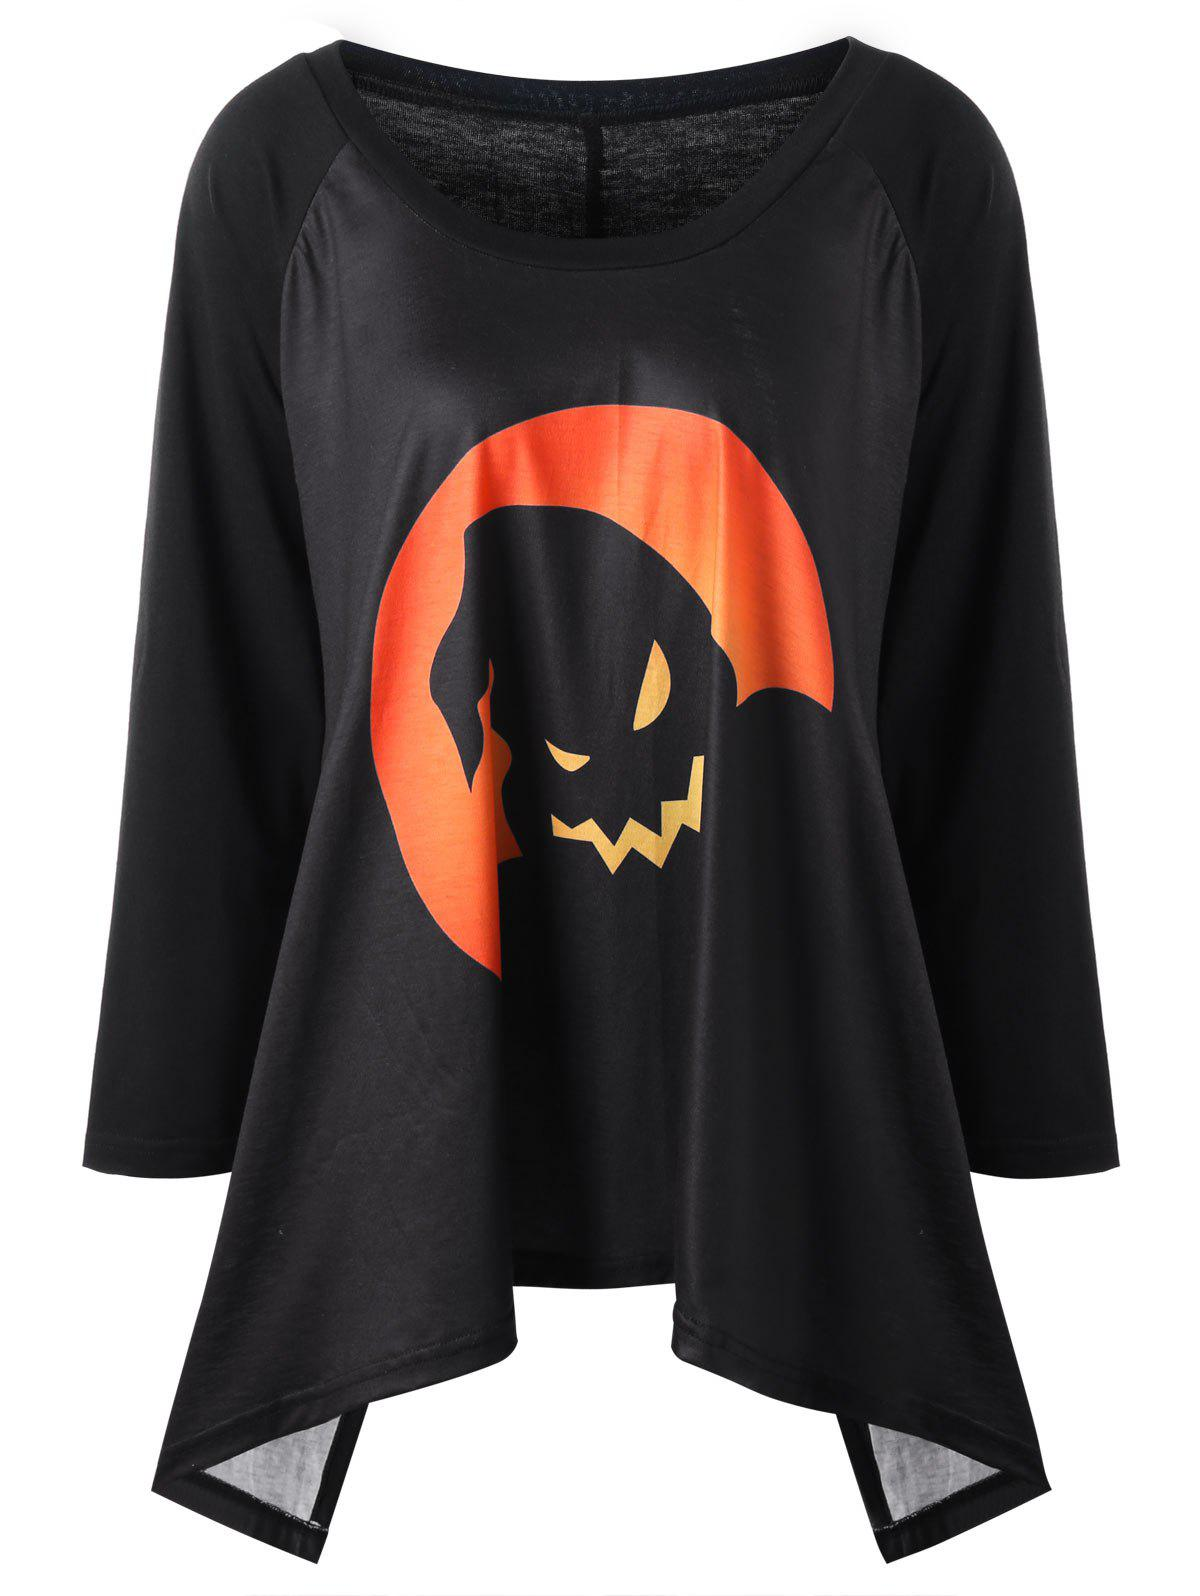 chic plus size halloween graphic raglan sleeve top